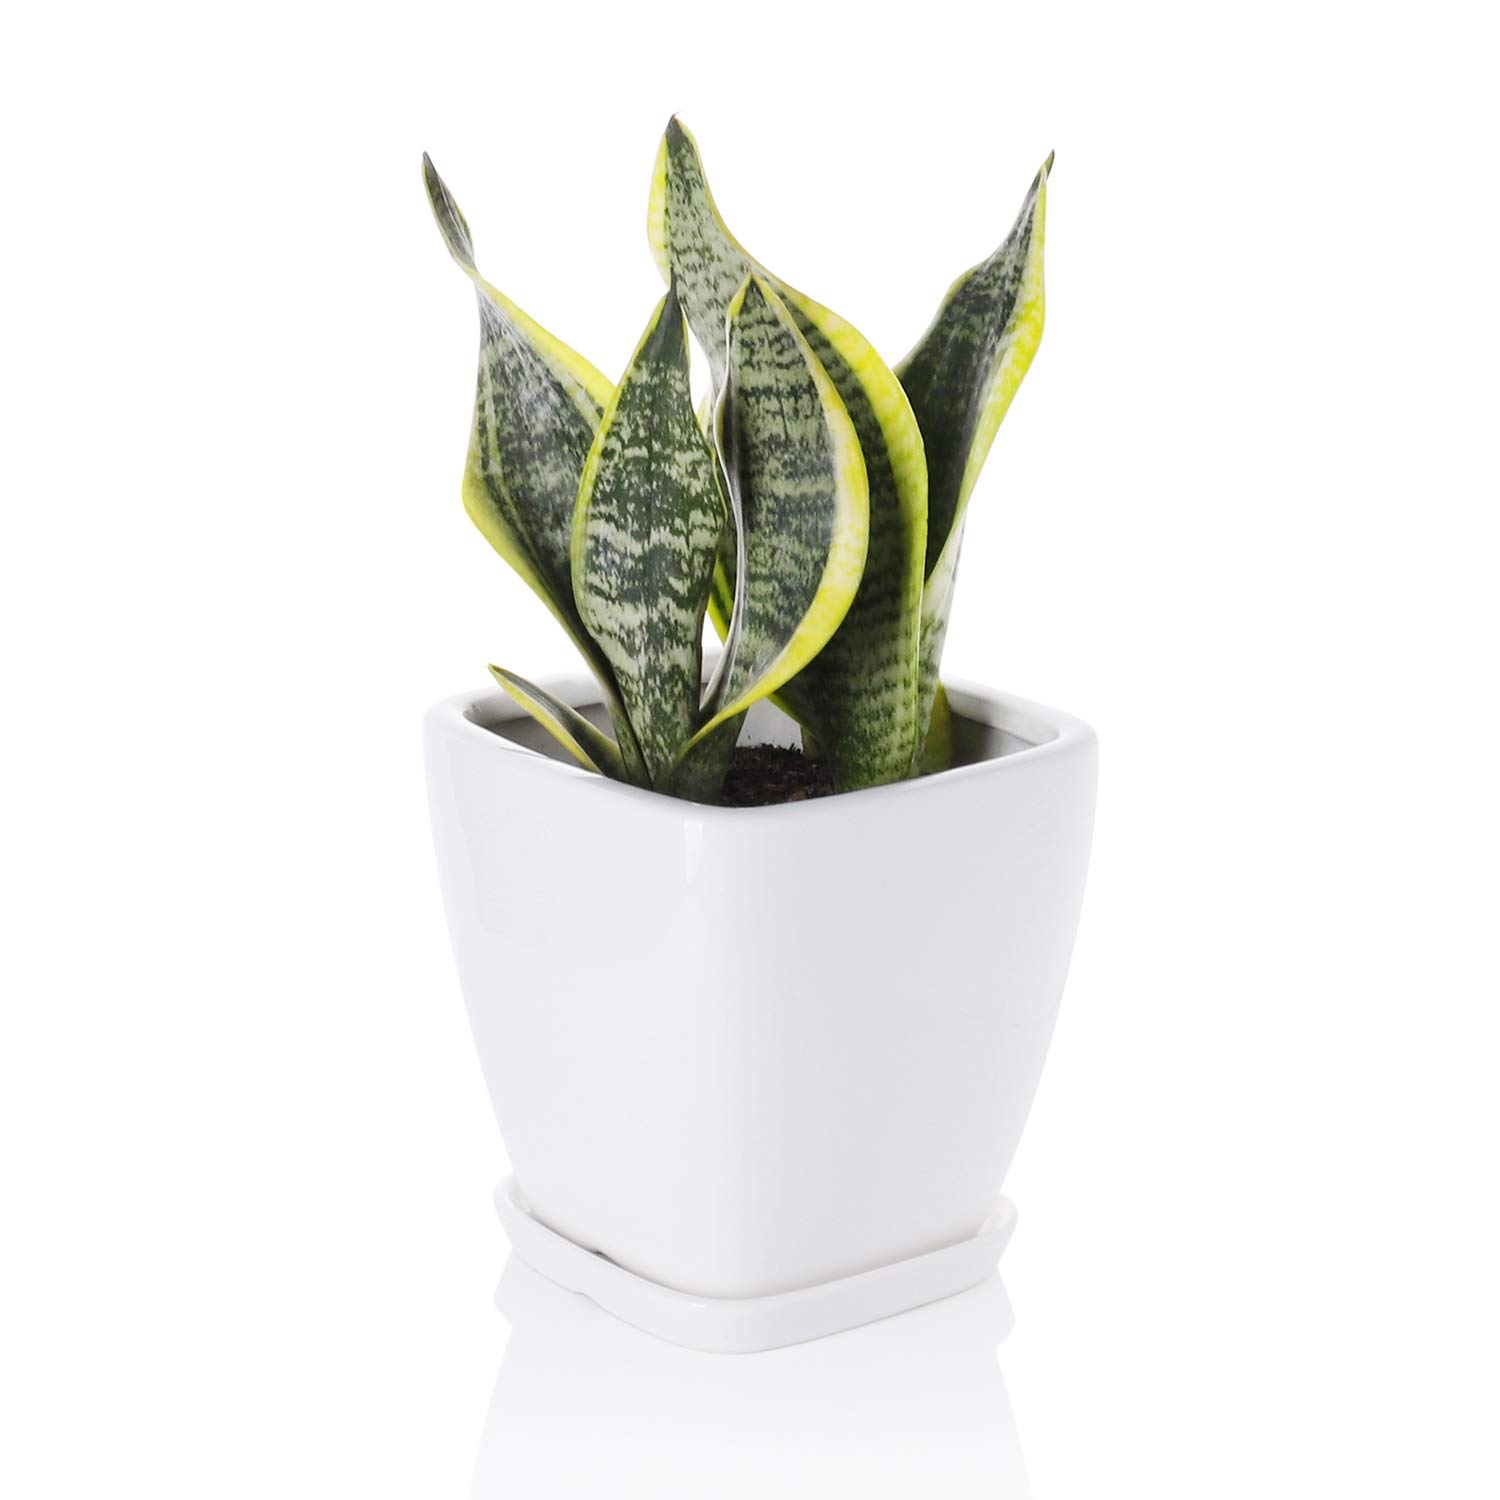 Greenaholics Succulent Pot – 5.1 Inch Square Ceramic Planter with Saucer, Flower Pot for Indoor Plant, with Drainage Hole, White